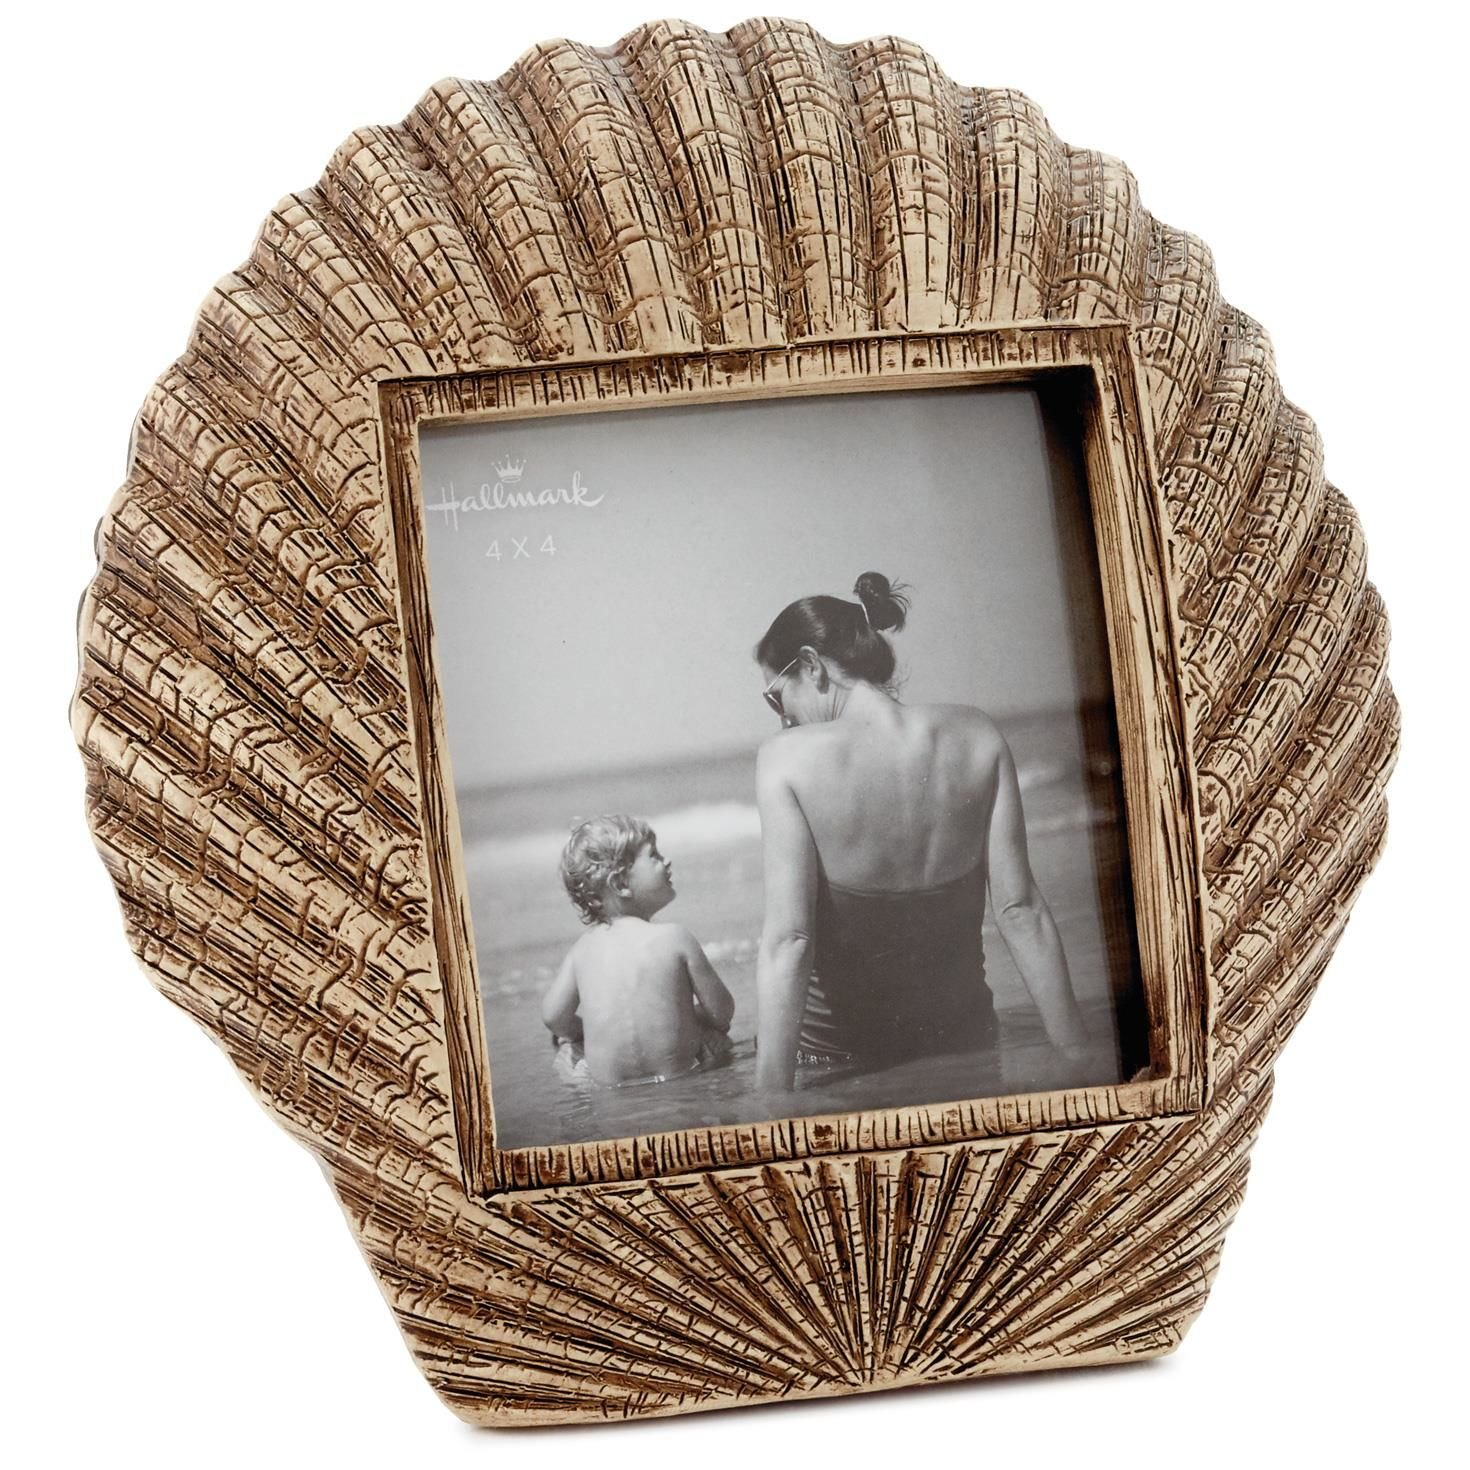 Scallop Seashell Metal Picture Frame, 4x4 Picture Frames Animals & Nature